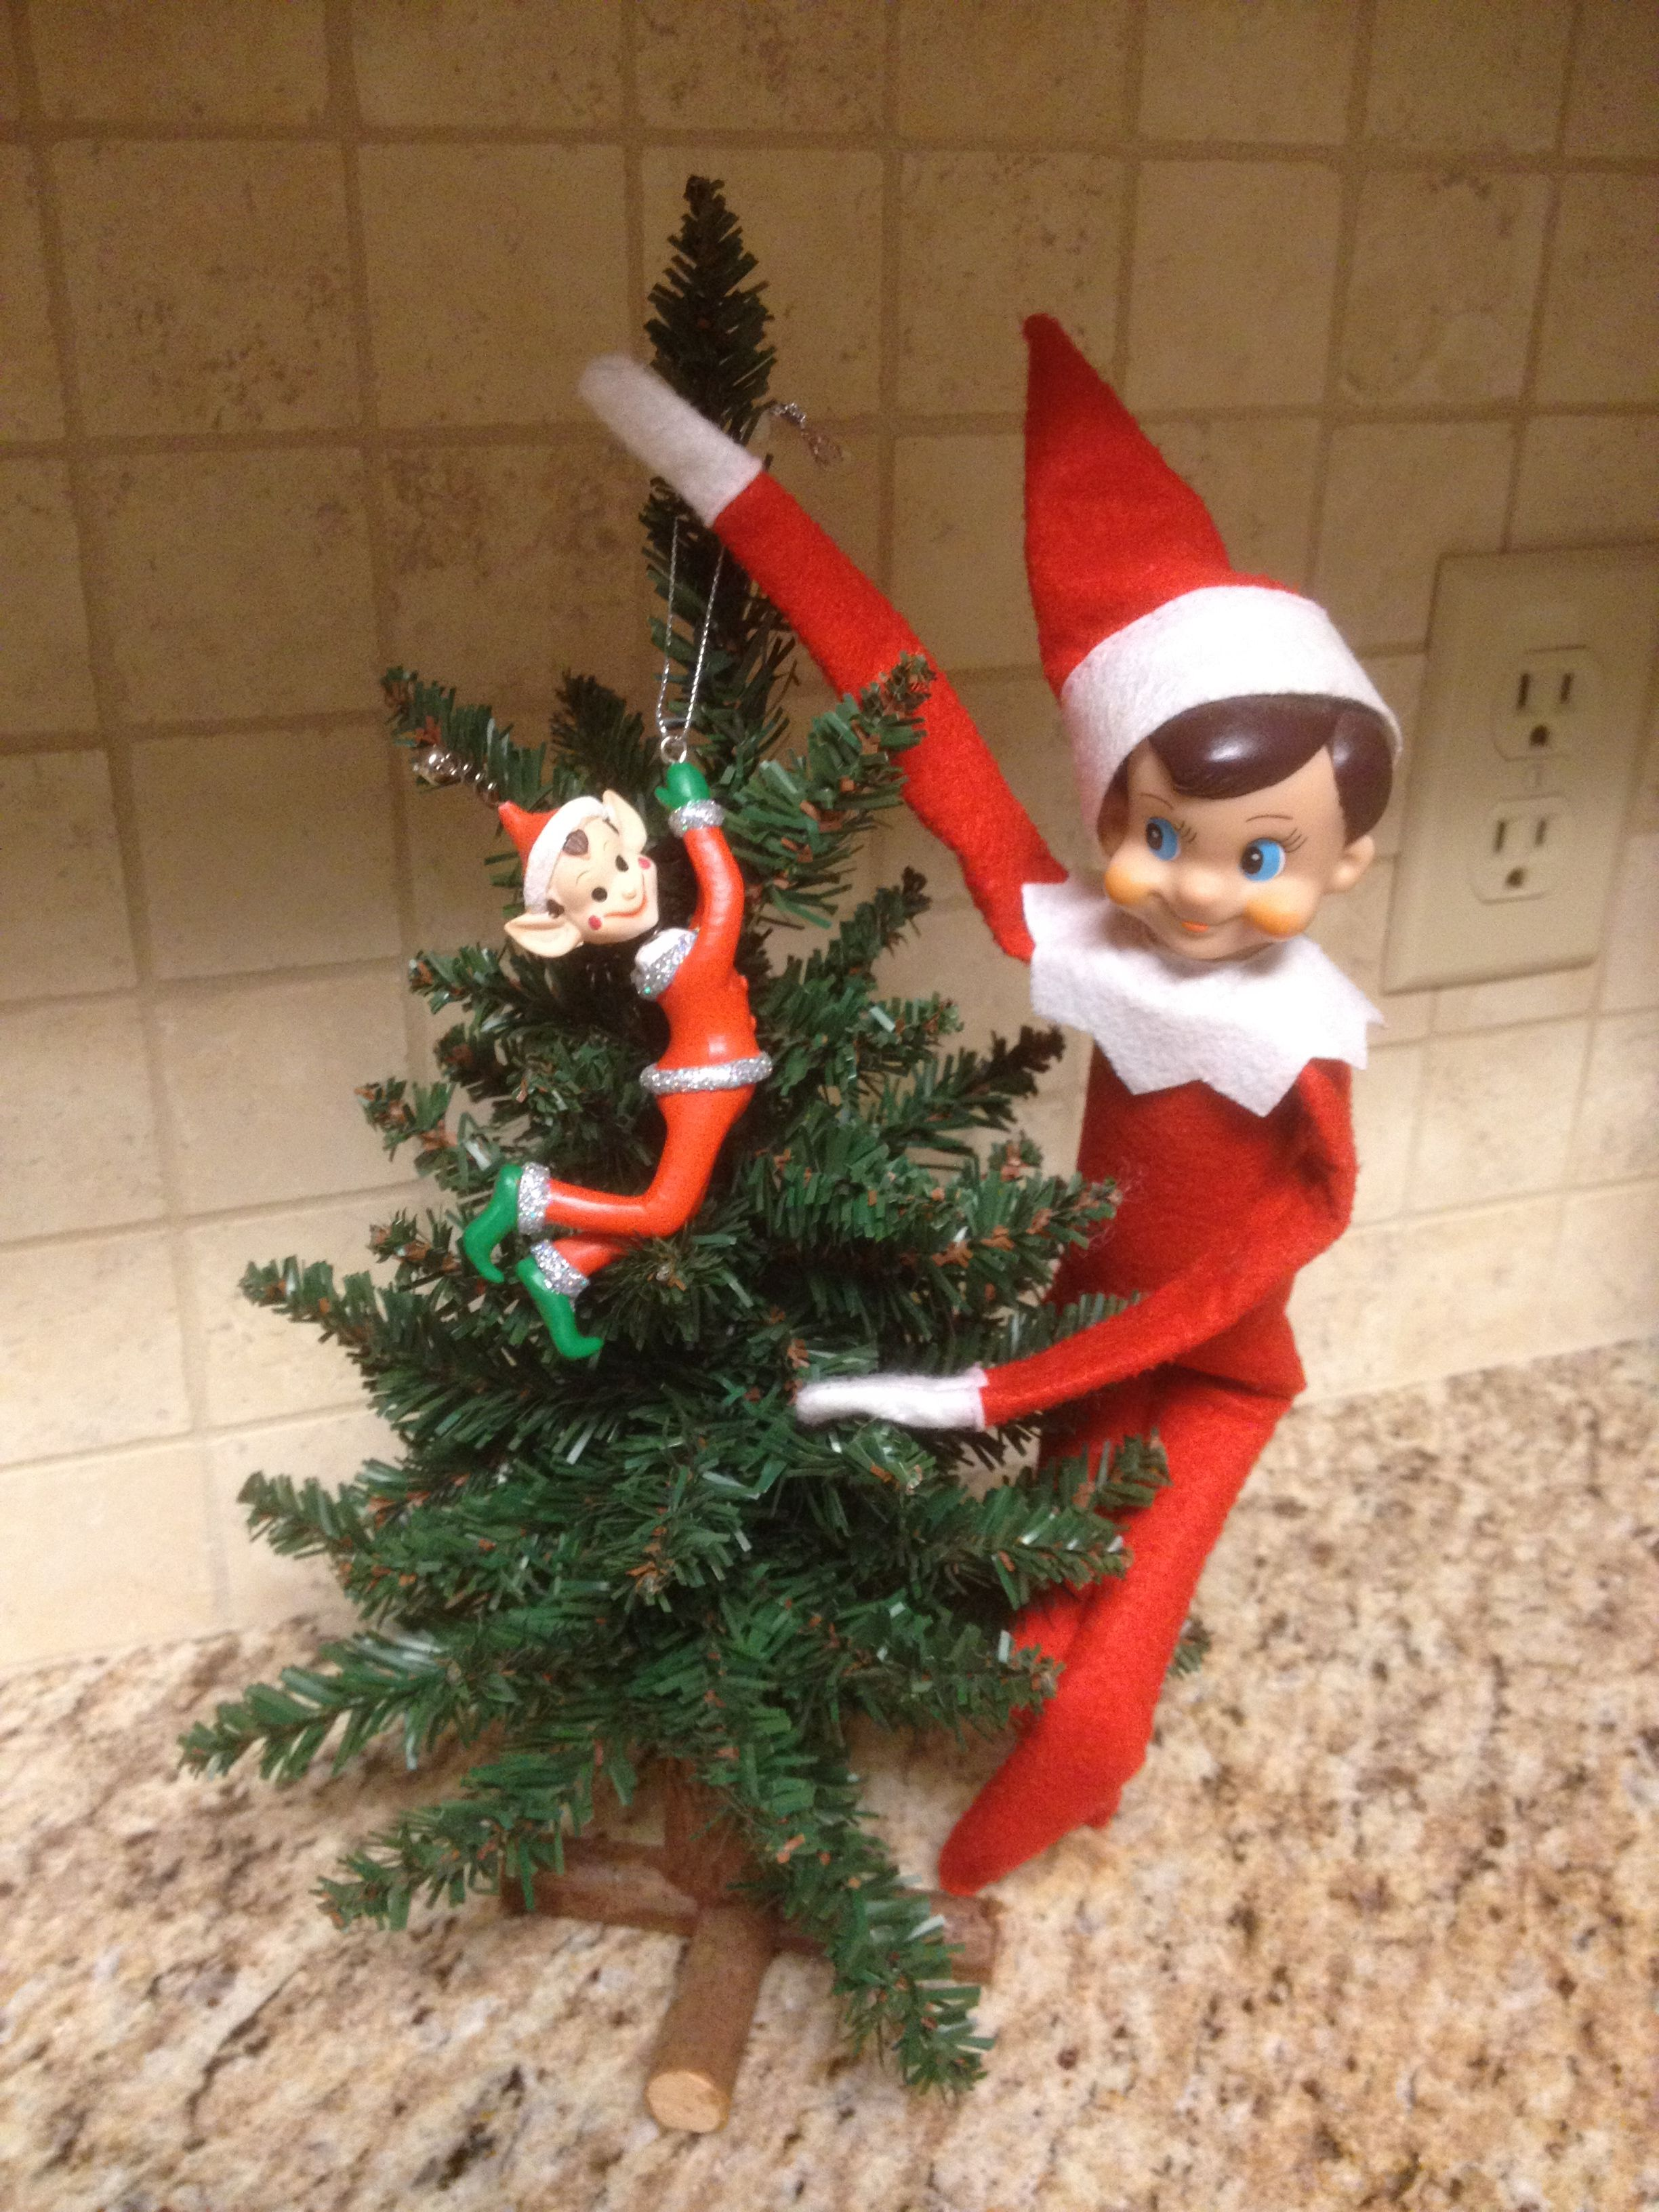 Elf On A Shelf Brought A Mini Tree An Elf Ornament Love This Then You Can Bring It Out Every Year The Day Before You W Xmas Elf Elf